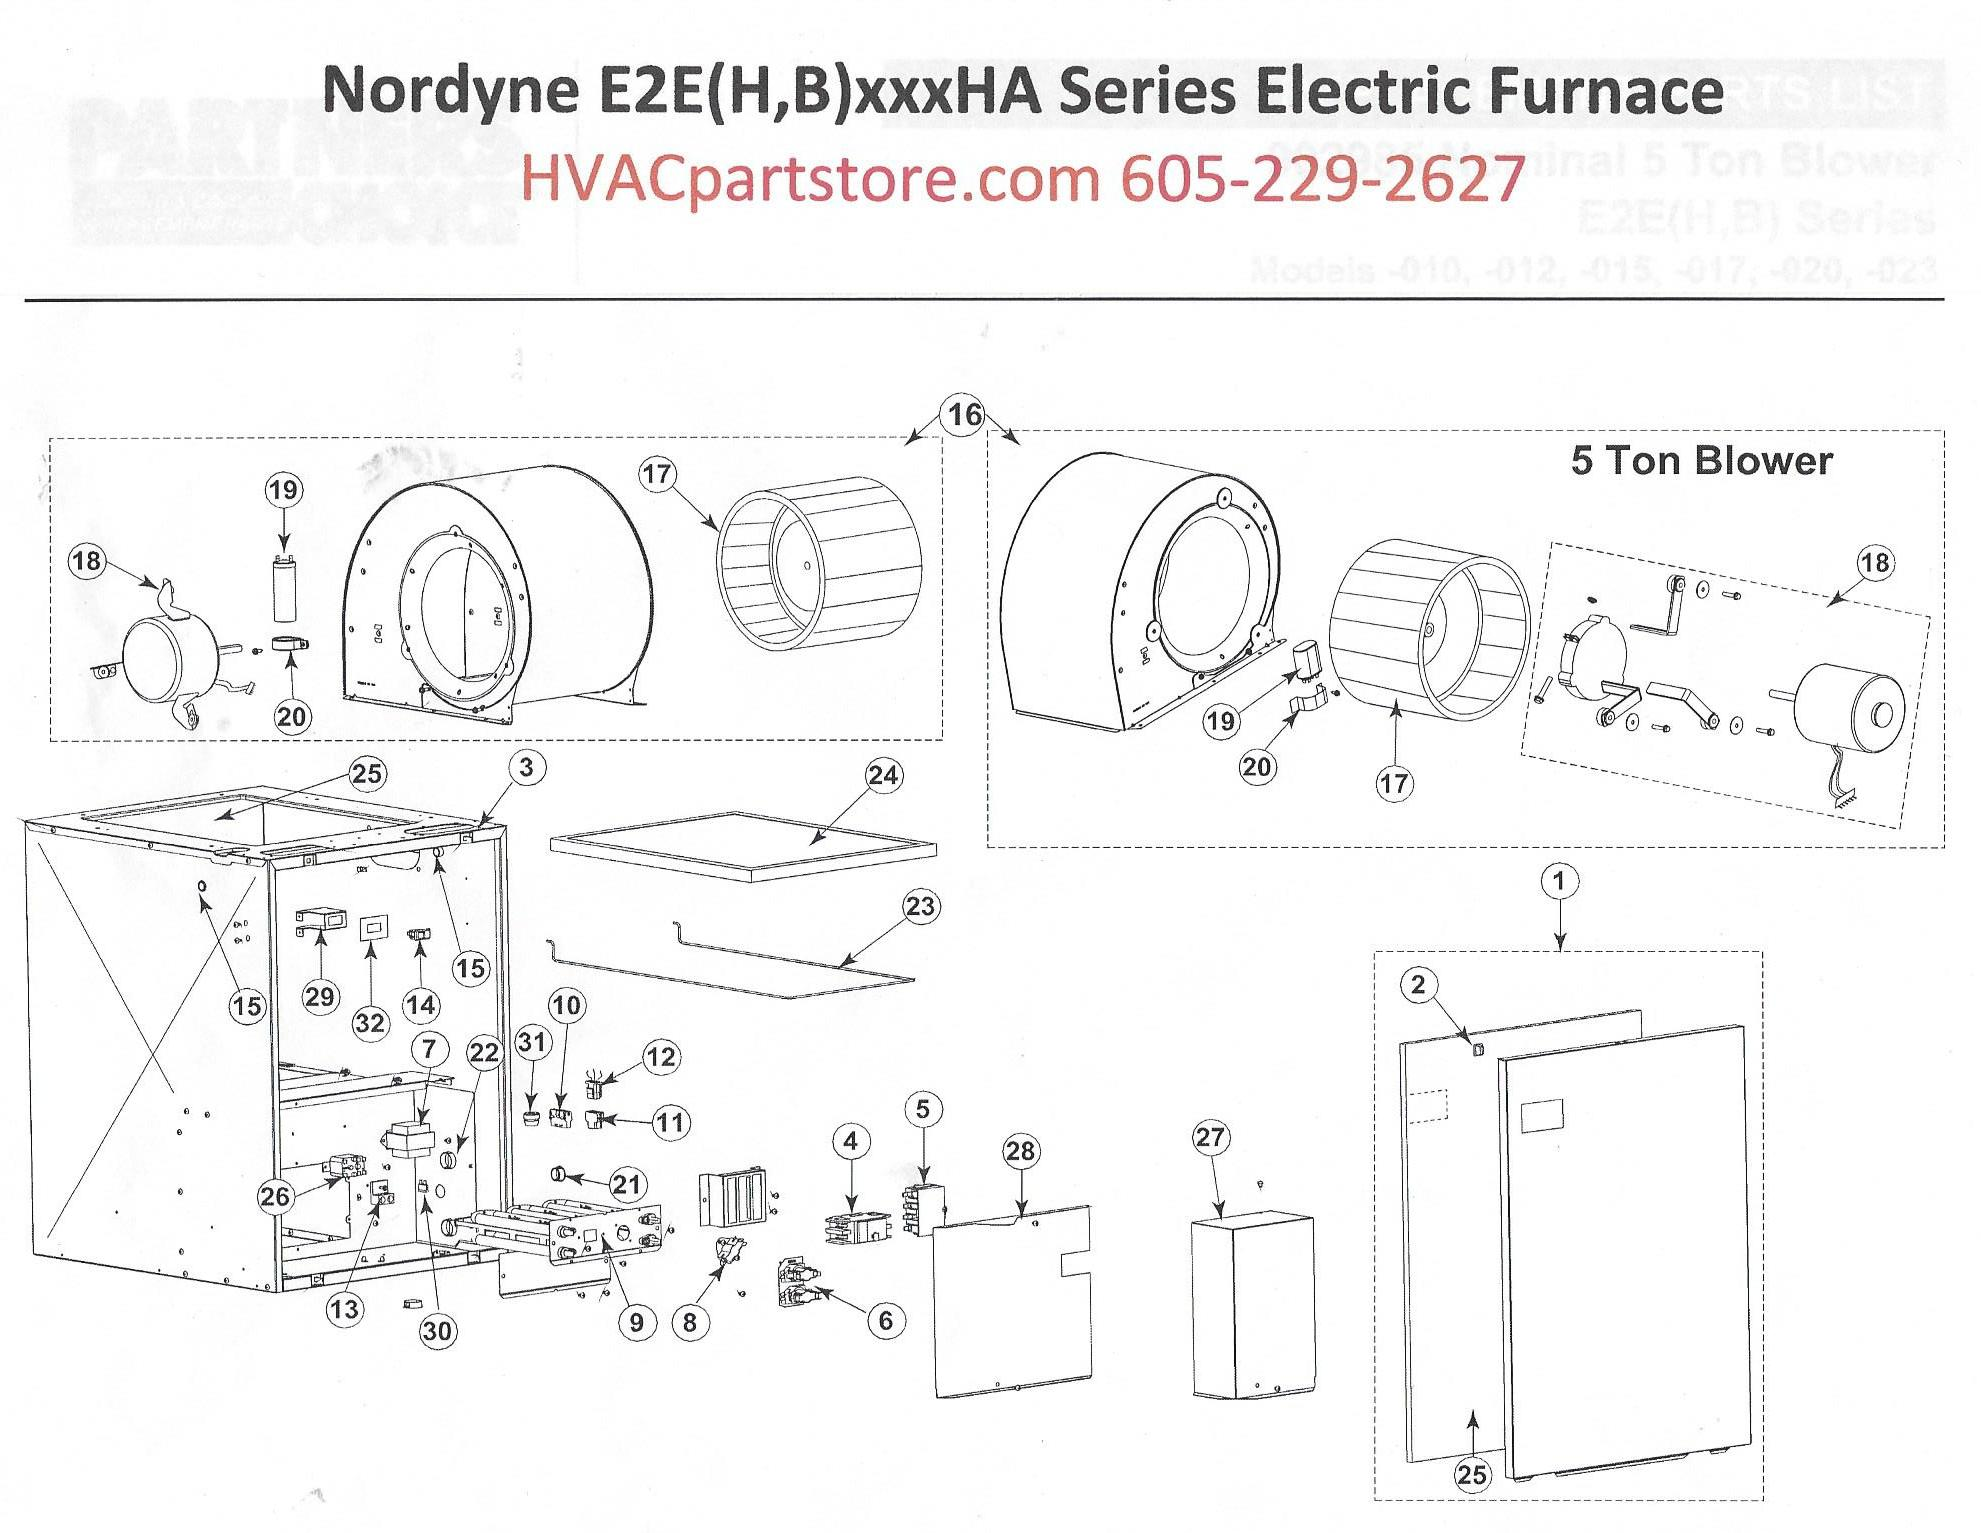 E2HADiagram_49ce4556 d54a 492f b872 5576d01fd58c?12850817849207588219 e2eb015ha nordyne electric furnace parts hvacpartstore intertherm e2eb 015ha wiring diagram at readyjetset.co